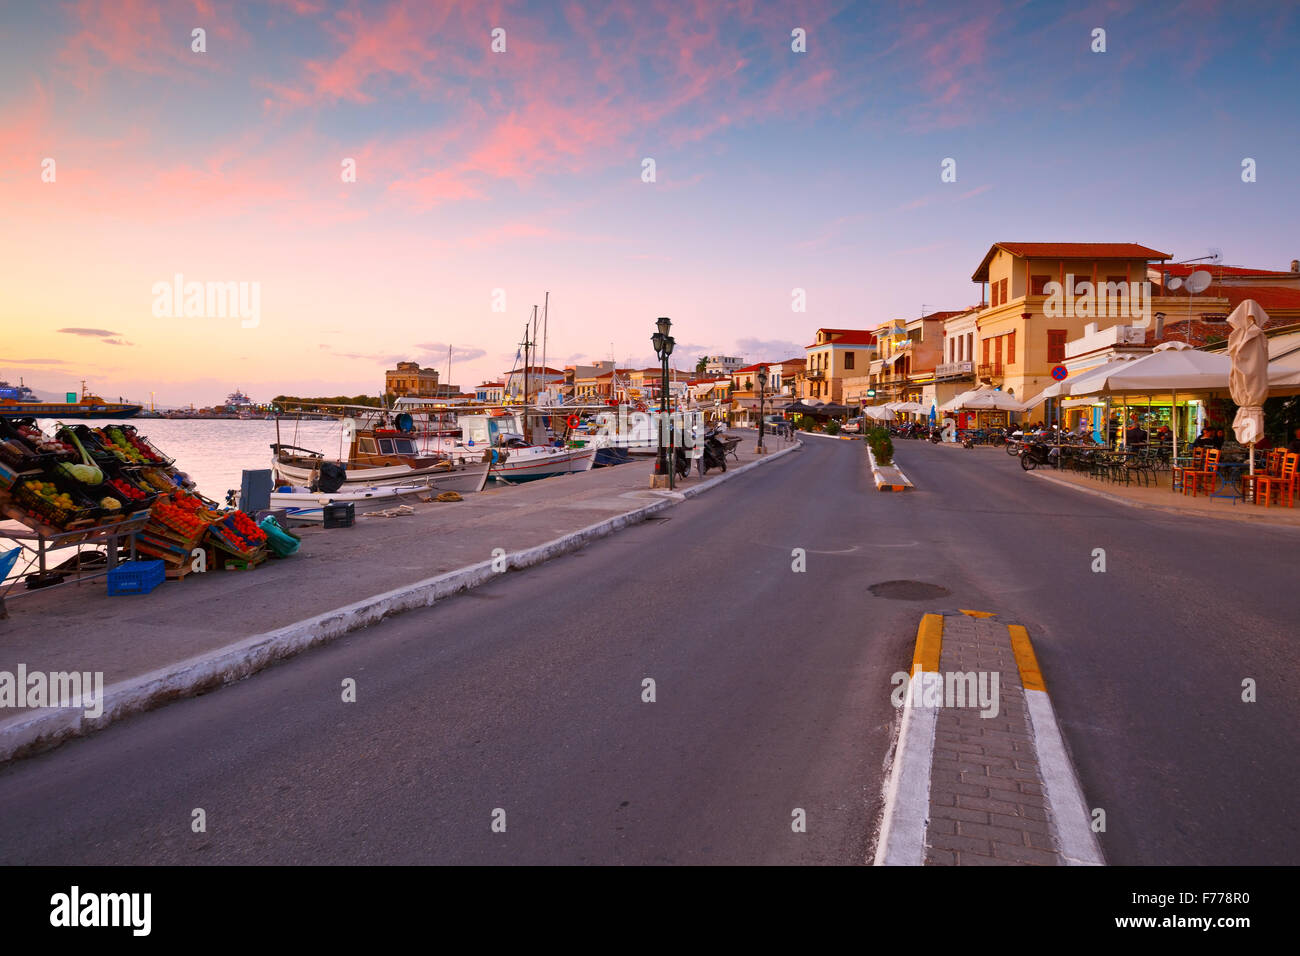 View of the seafront with coffee shops, bars and restaurants and fishing boats in the harbour of Aegina island, - Stock Image